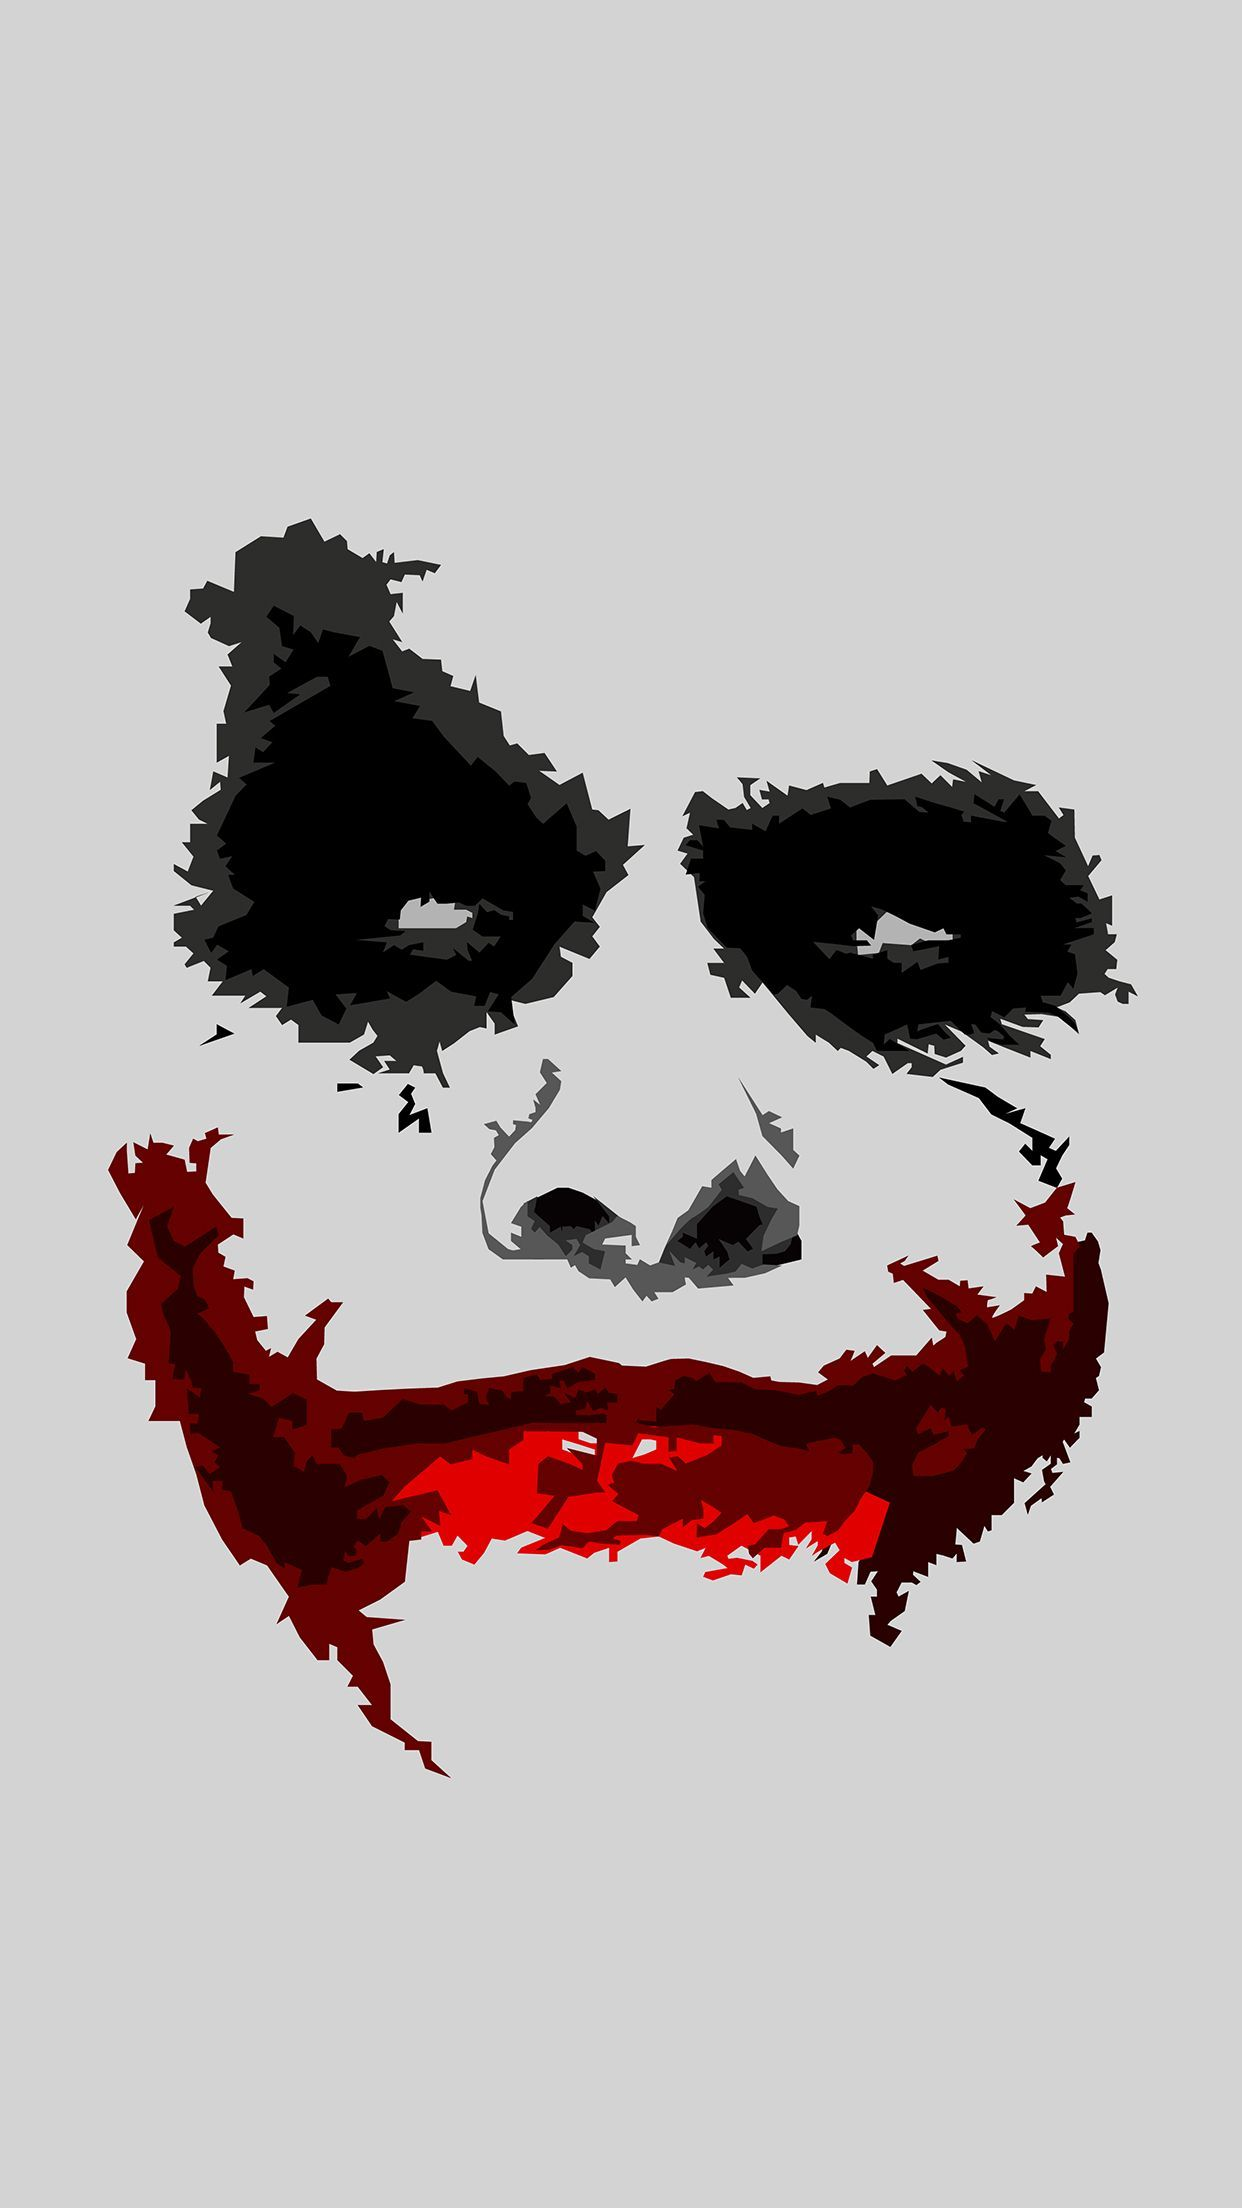 joker wallpaper iphone | wallpapers | pinterest | joker, wallpaper